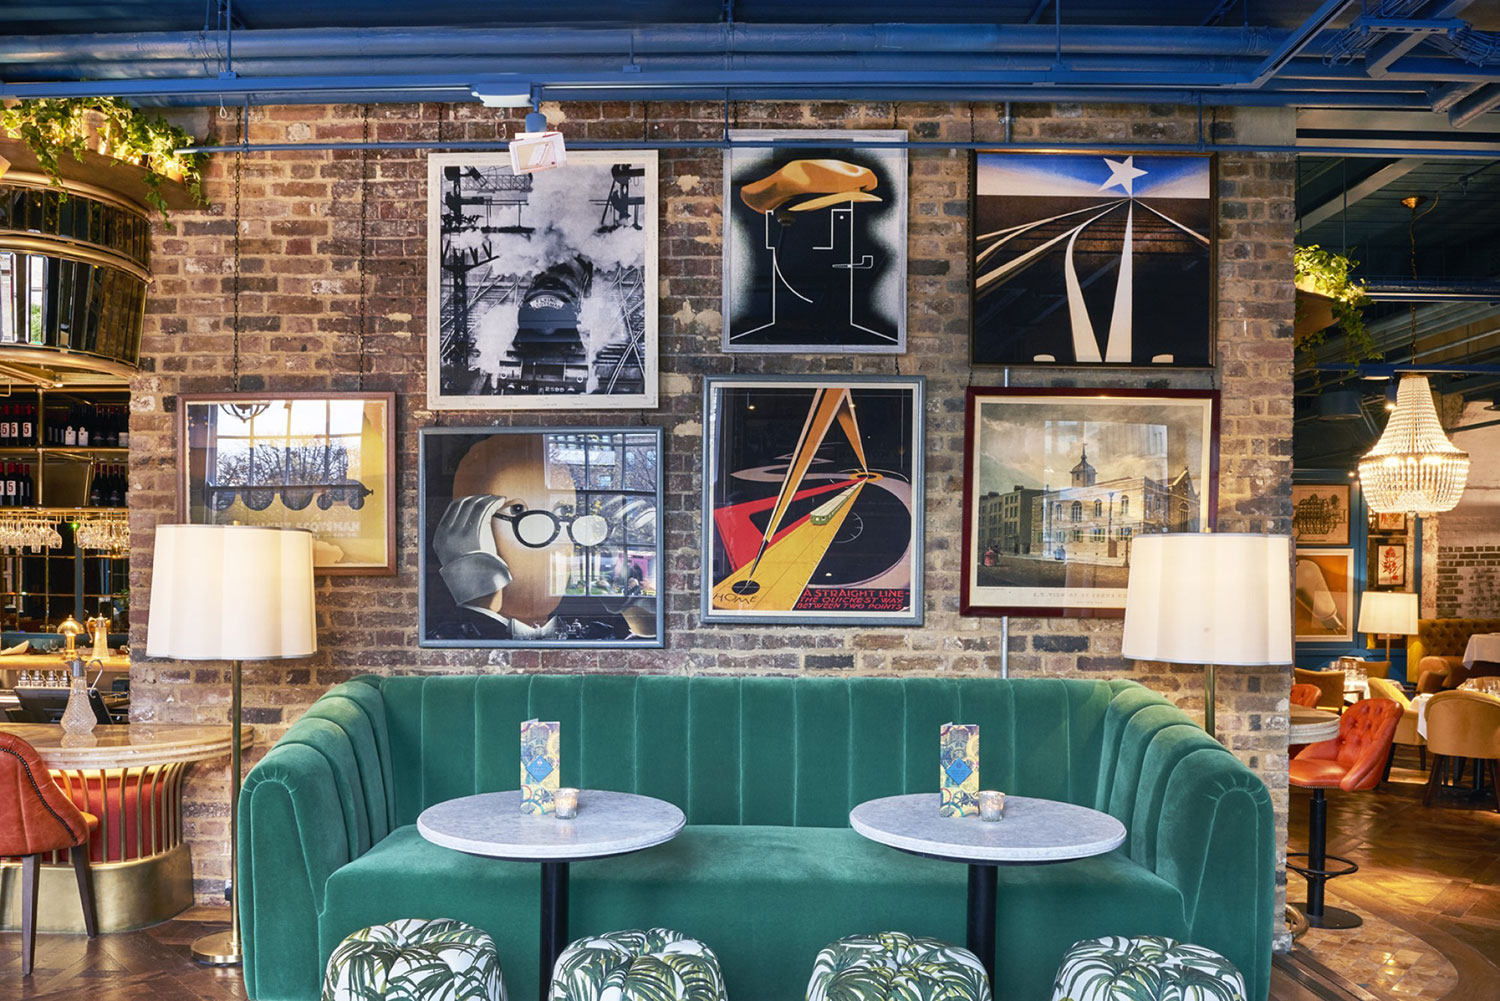 A green velvet sofa and picture wall at the Granary Square Brasserie, near Euston Station - Granary Square Brasserie